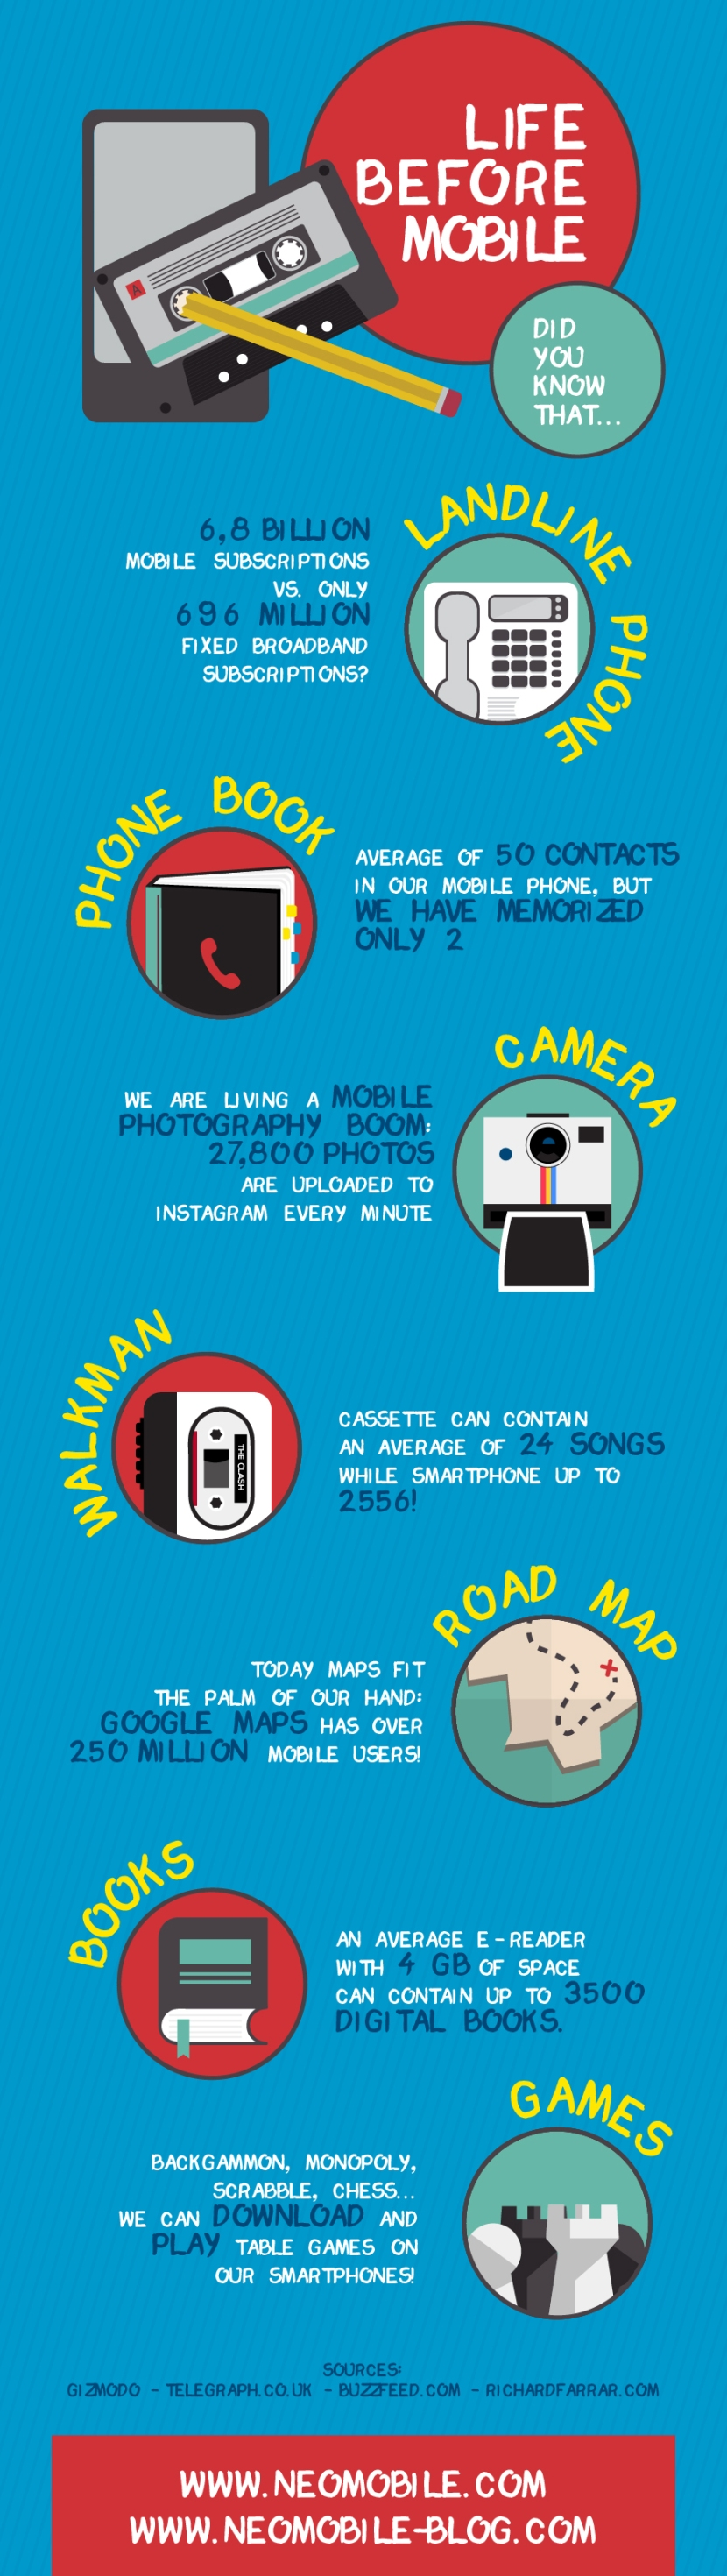 life-before-mobile_infographic